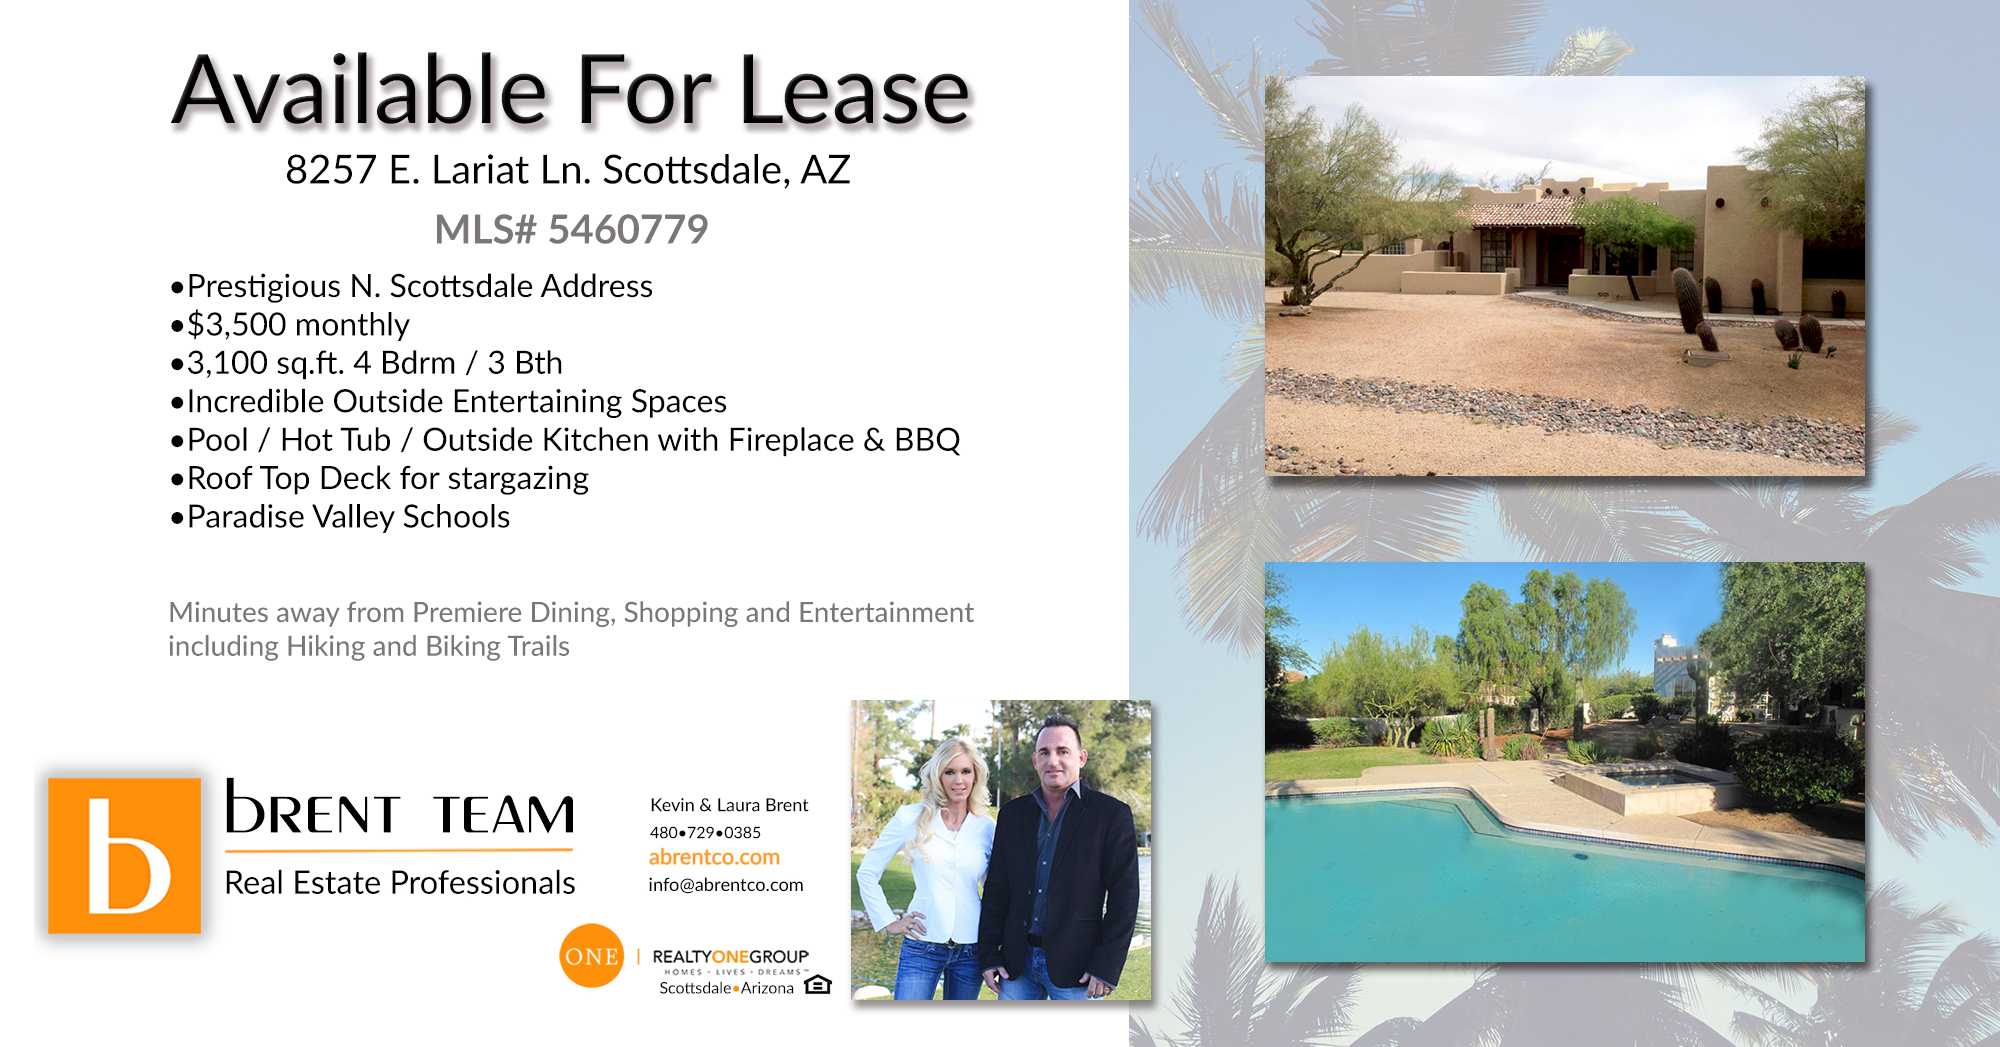 Available For Lease North Scottsdale